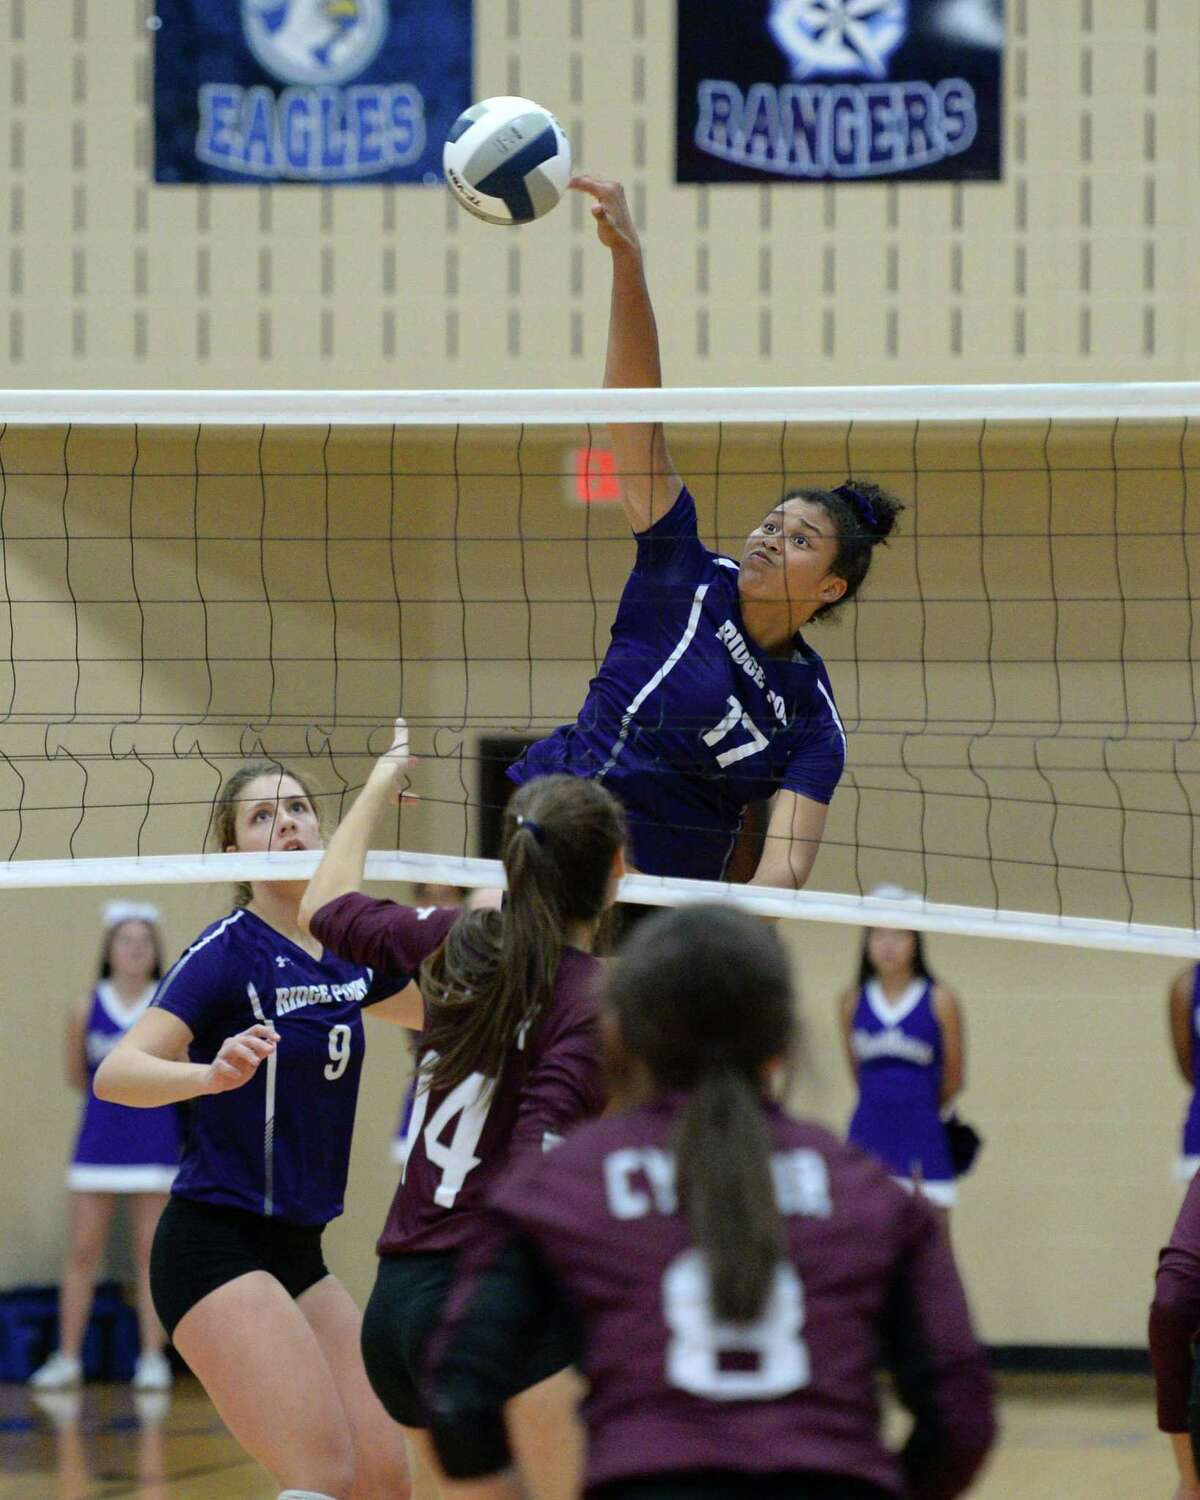 Alexis Roberson (17) of Ridge Point attempts a kill shot during the second set of the Region III-6A Final volleyball match between the Ridge Point Panthers and the Cy-Fair Bobcats on Saturday, November 16, 2019 at Wheeler Fieldhouse, Sugar Land, TX.